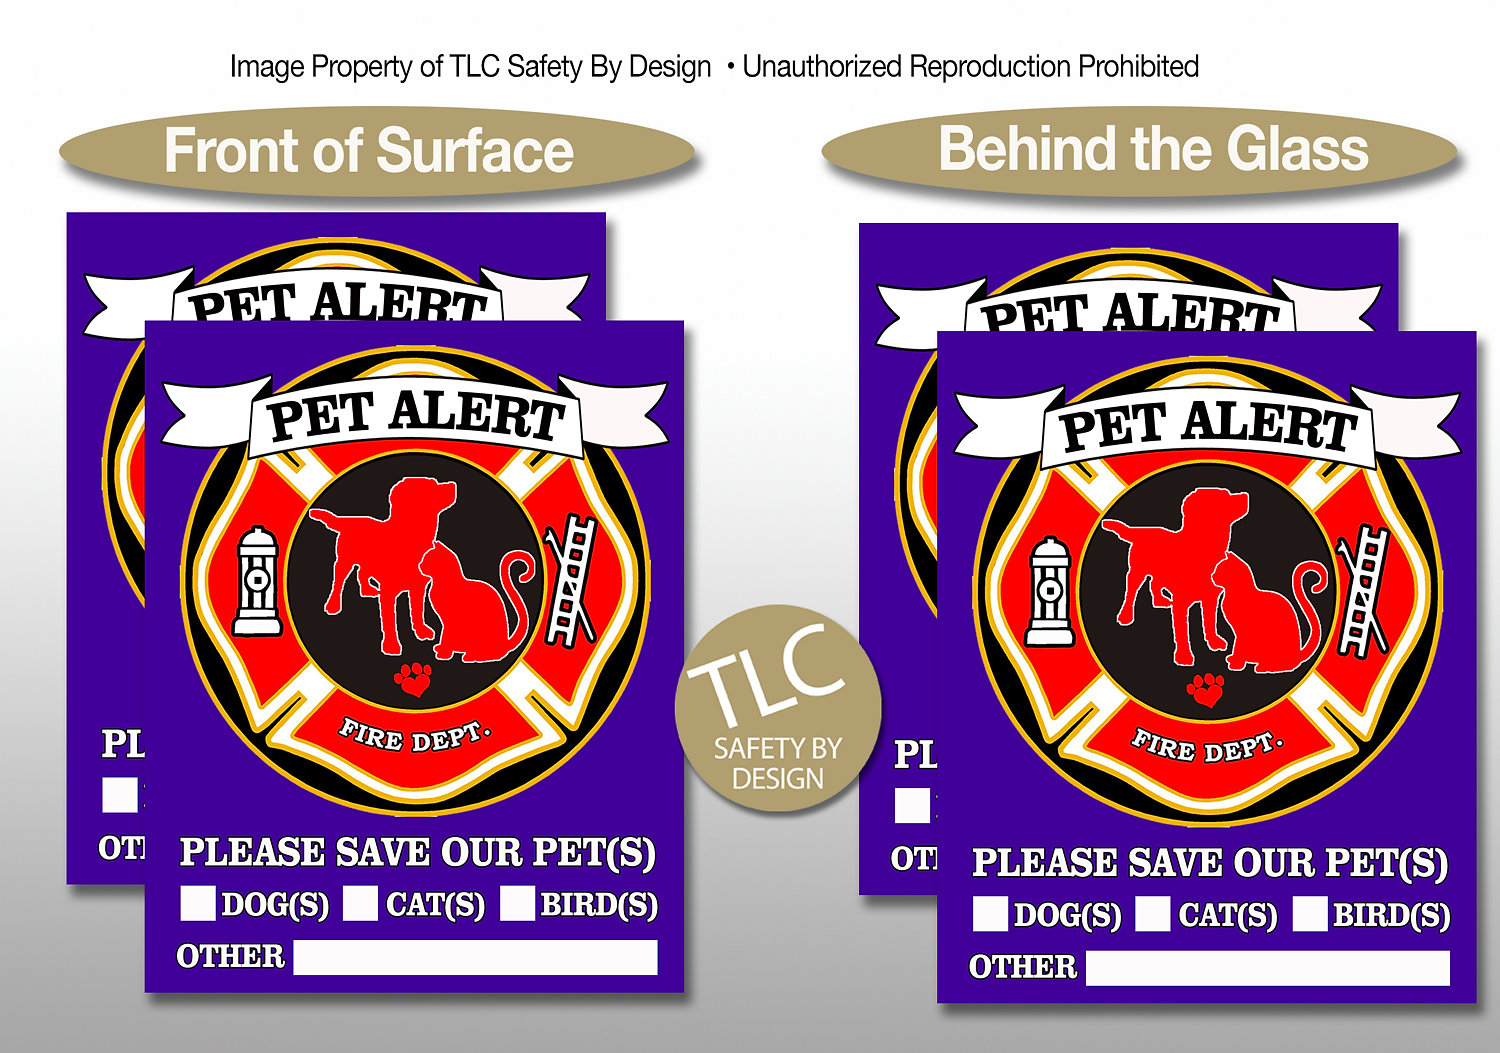 TLC Safety By Design Safety Products For Adults Kids Pets - Window decals for bird safety